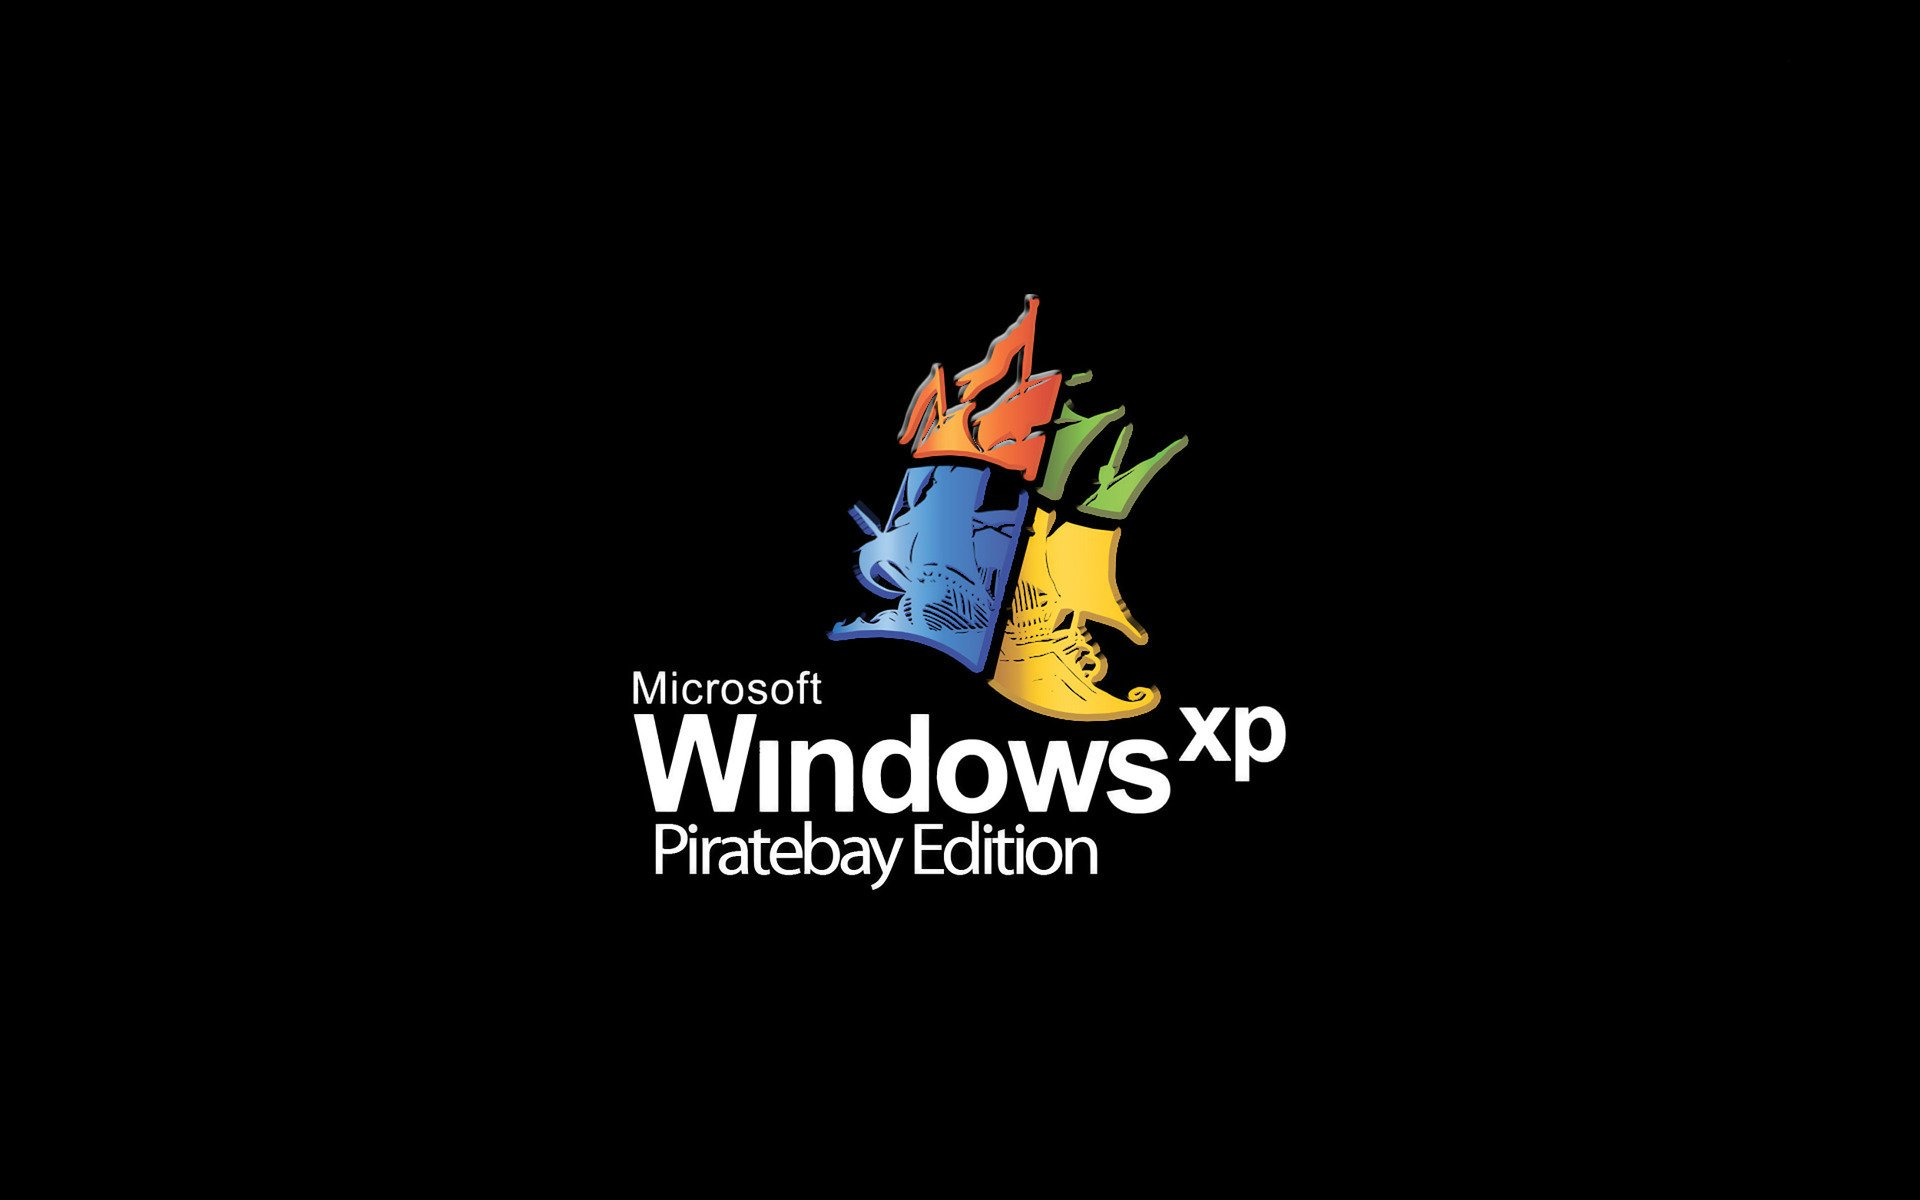 Windows Xp Full HD Wallpaper And Background Image